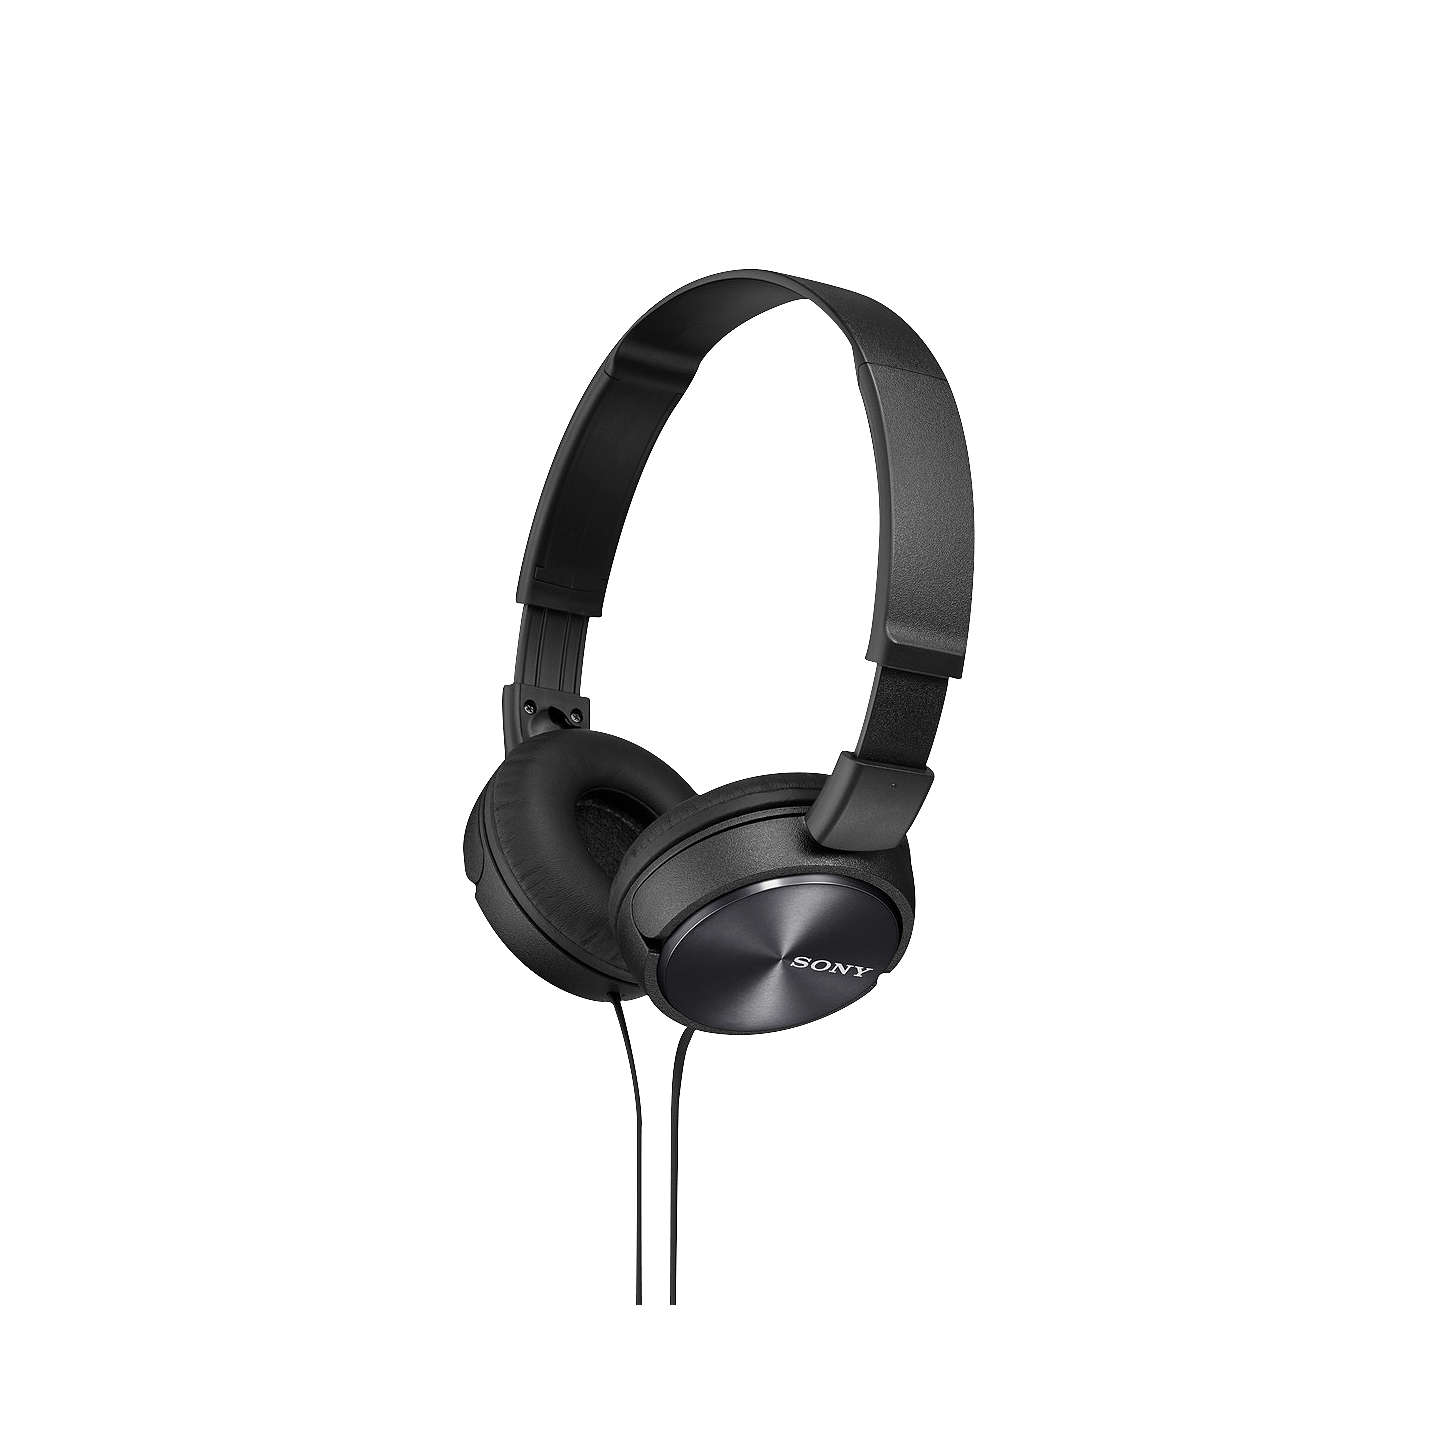 BuySony MDR-ZX310 On-Ear Headphones with Mic/Remote, Black Online at johnlewis.com